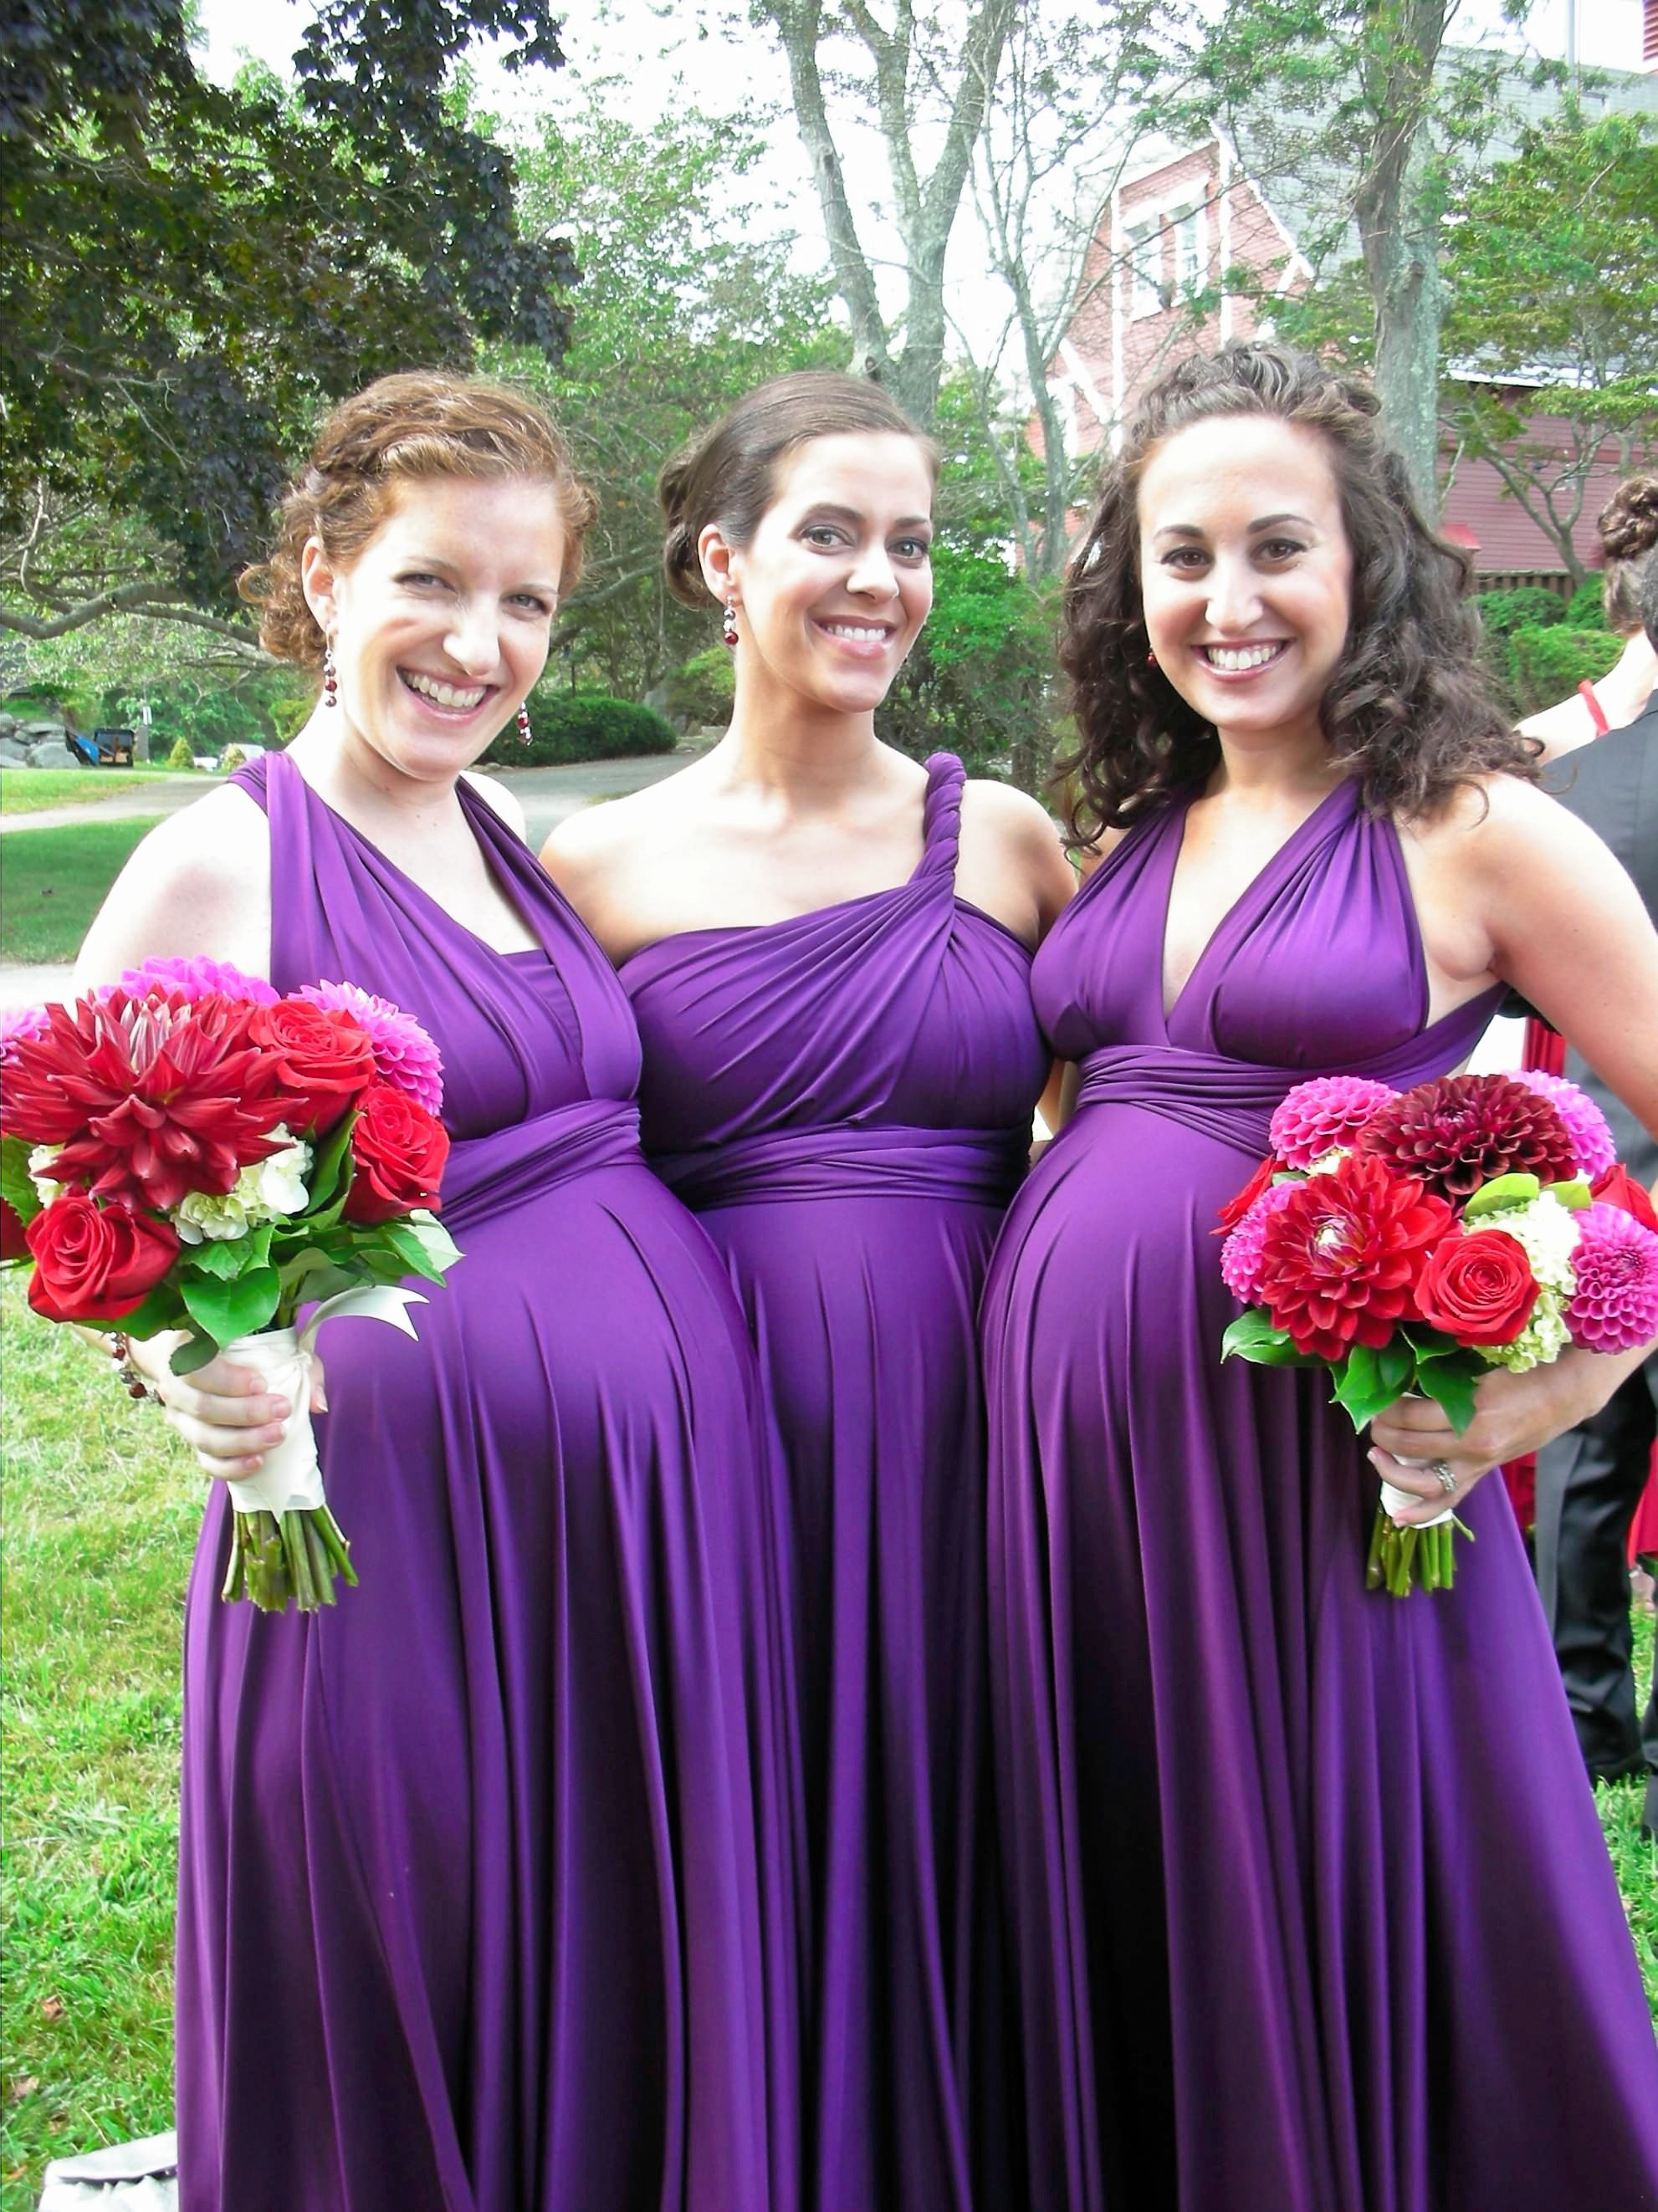 Gorgeous pregnant bridesmaids in aubergine ballgowns they are gorgeous pregnant bridesmaids in aubergine ballgowns they are perfect for maternity wrap dresses really ombrellifo Choice Image